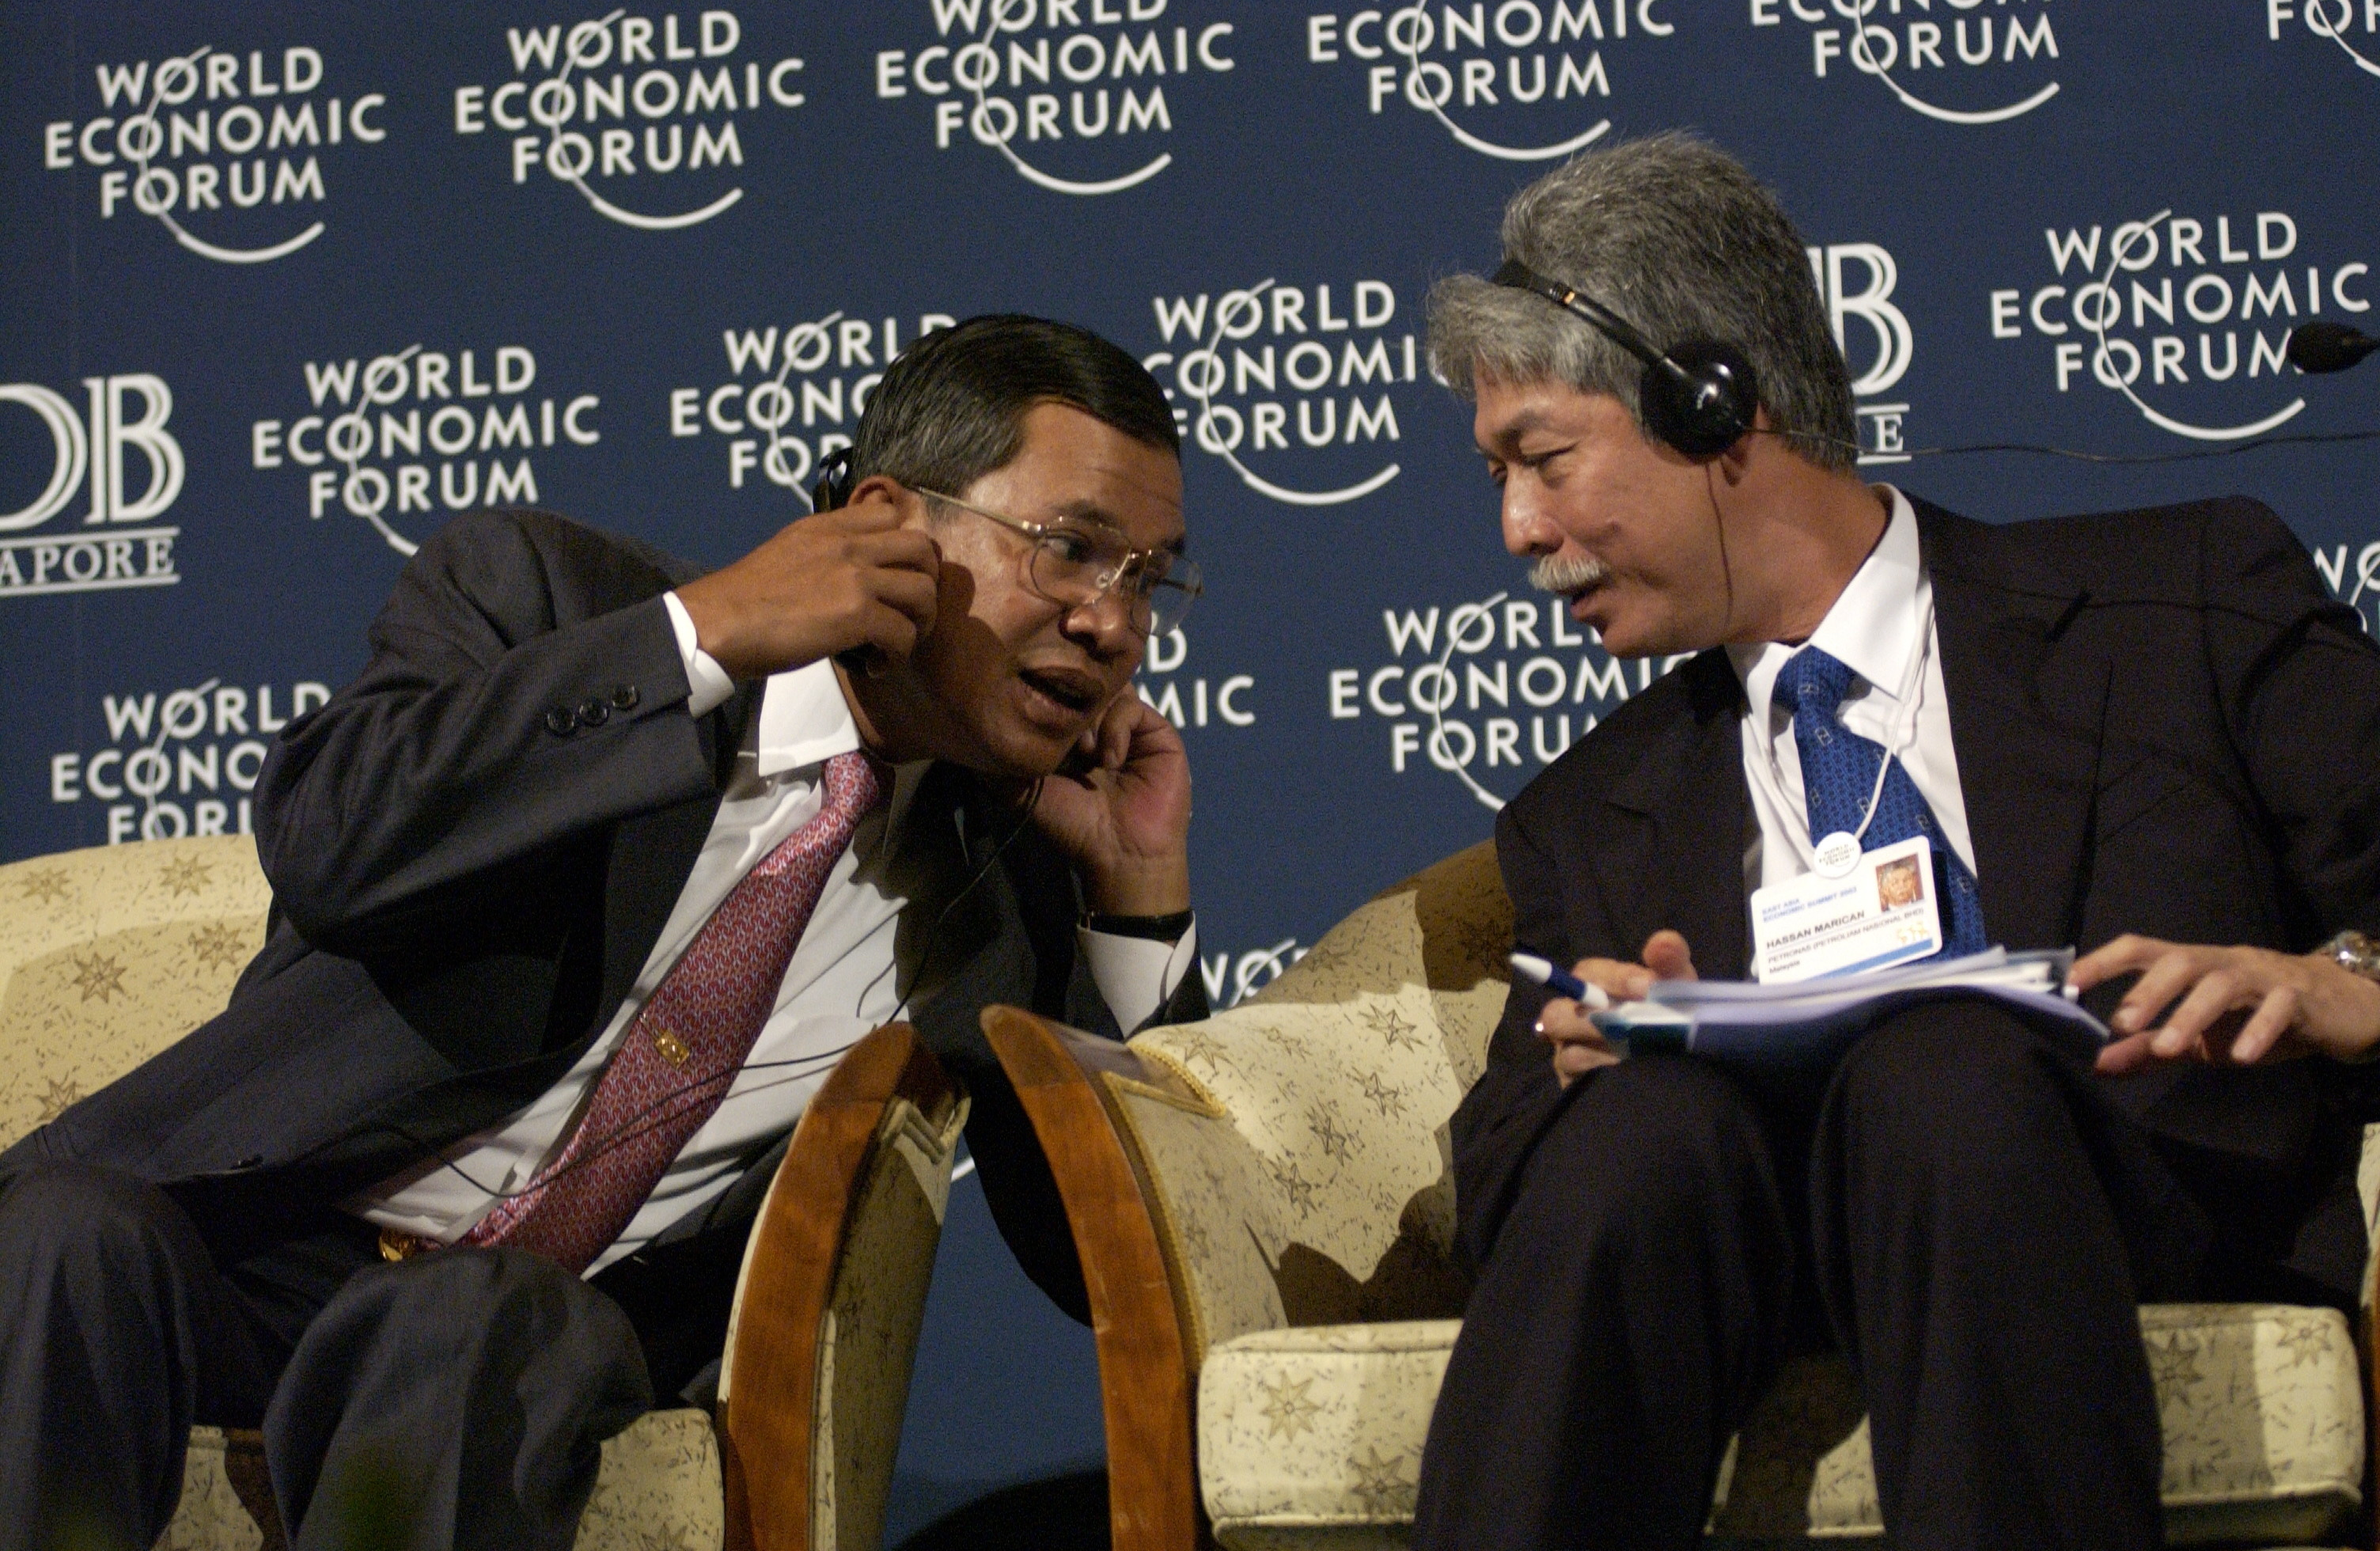 """Samdech Techo Hun Sen, Prime Minister of Cambodia, having a discussion with Hassan Marican, President and Chief Executive Officer, Petronas at the """"ASEAN in a Changing Global Order""""."""